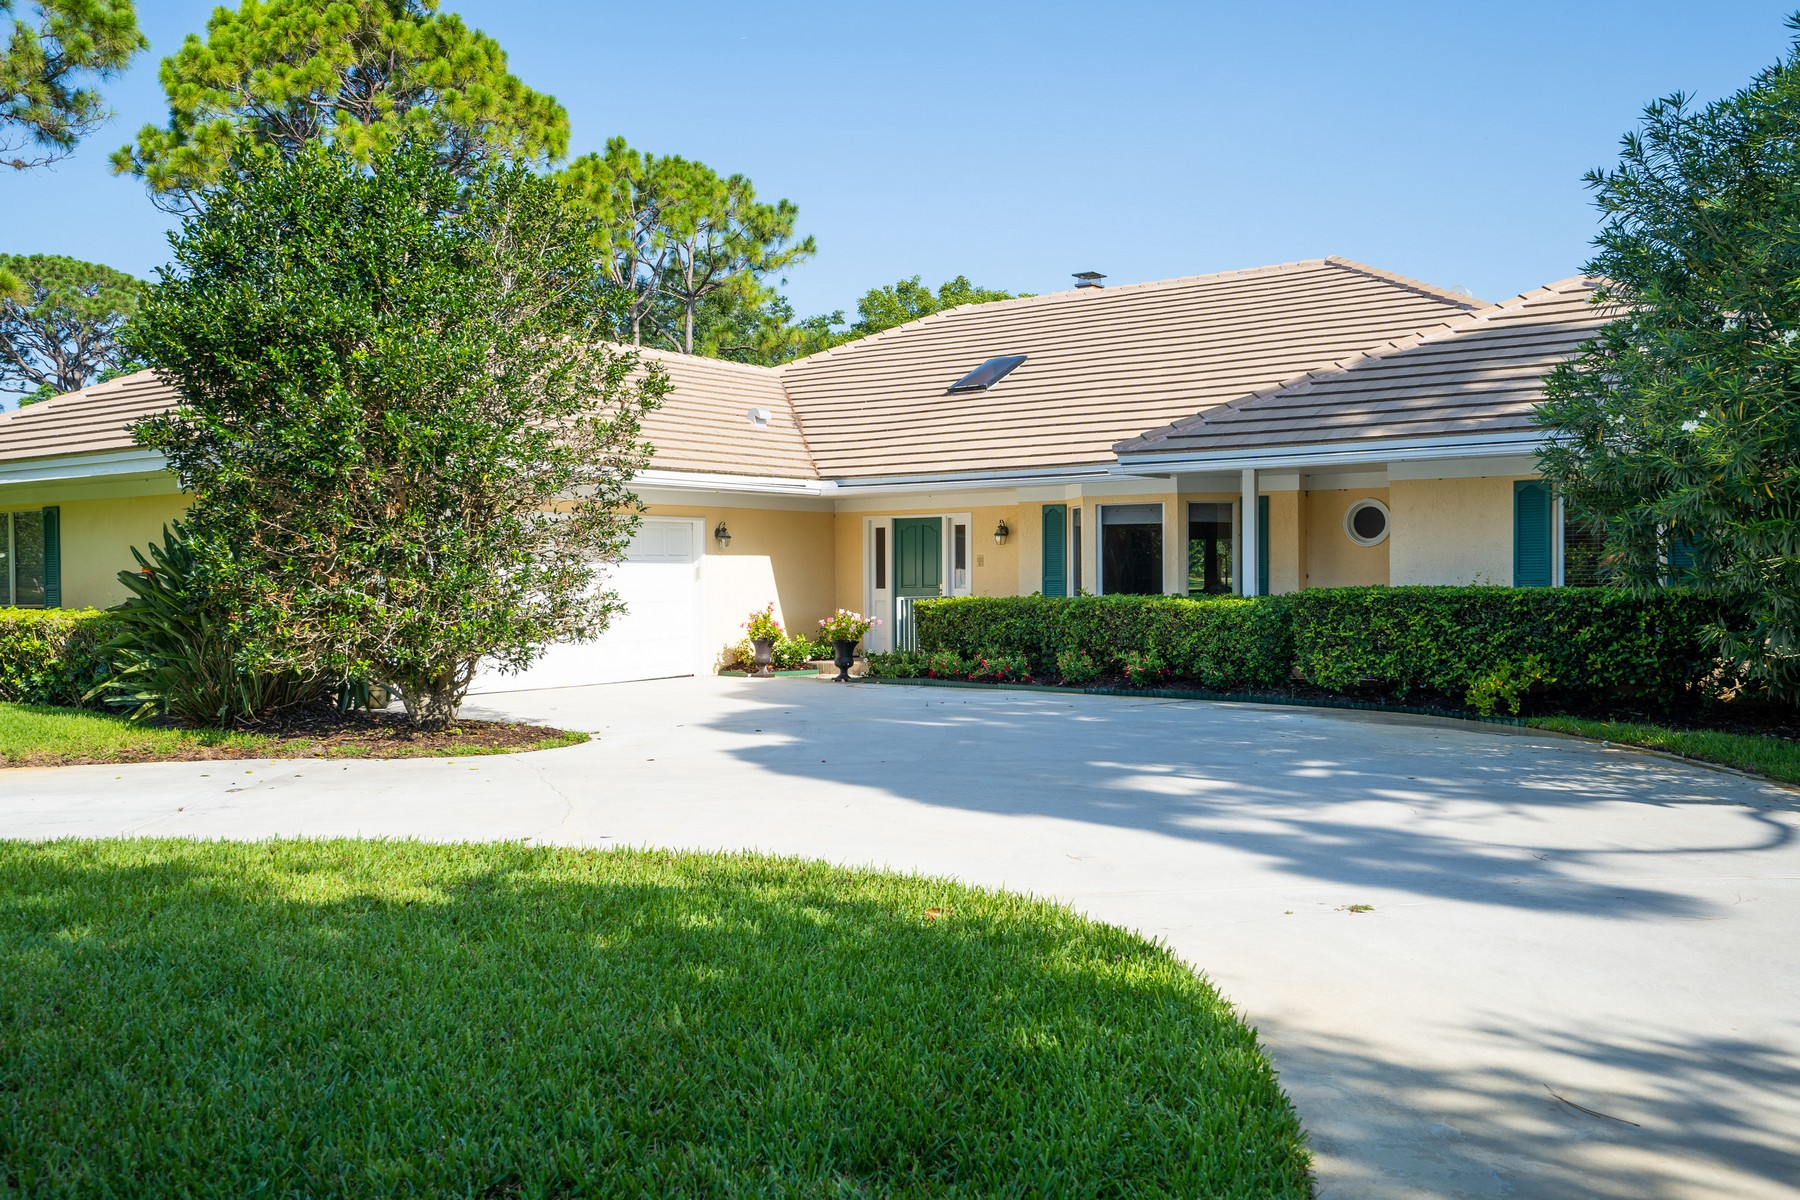 Property para Venda às Four Bedroom Home on the Golf Course 5825 Glen Eagle Lane Vero Beach, Florida 32967 Estados Unidos